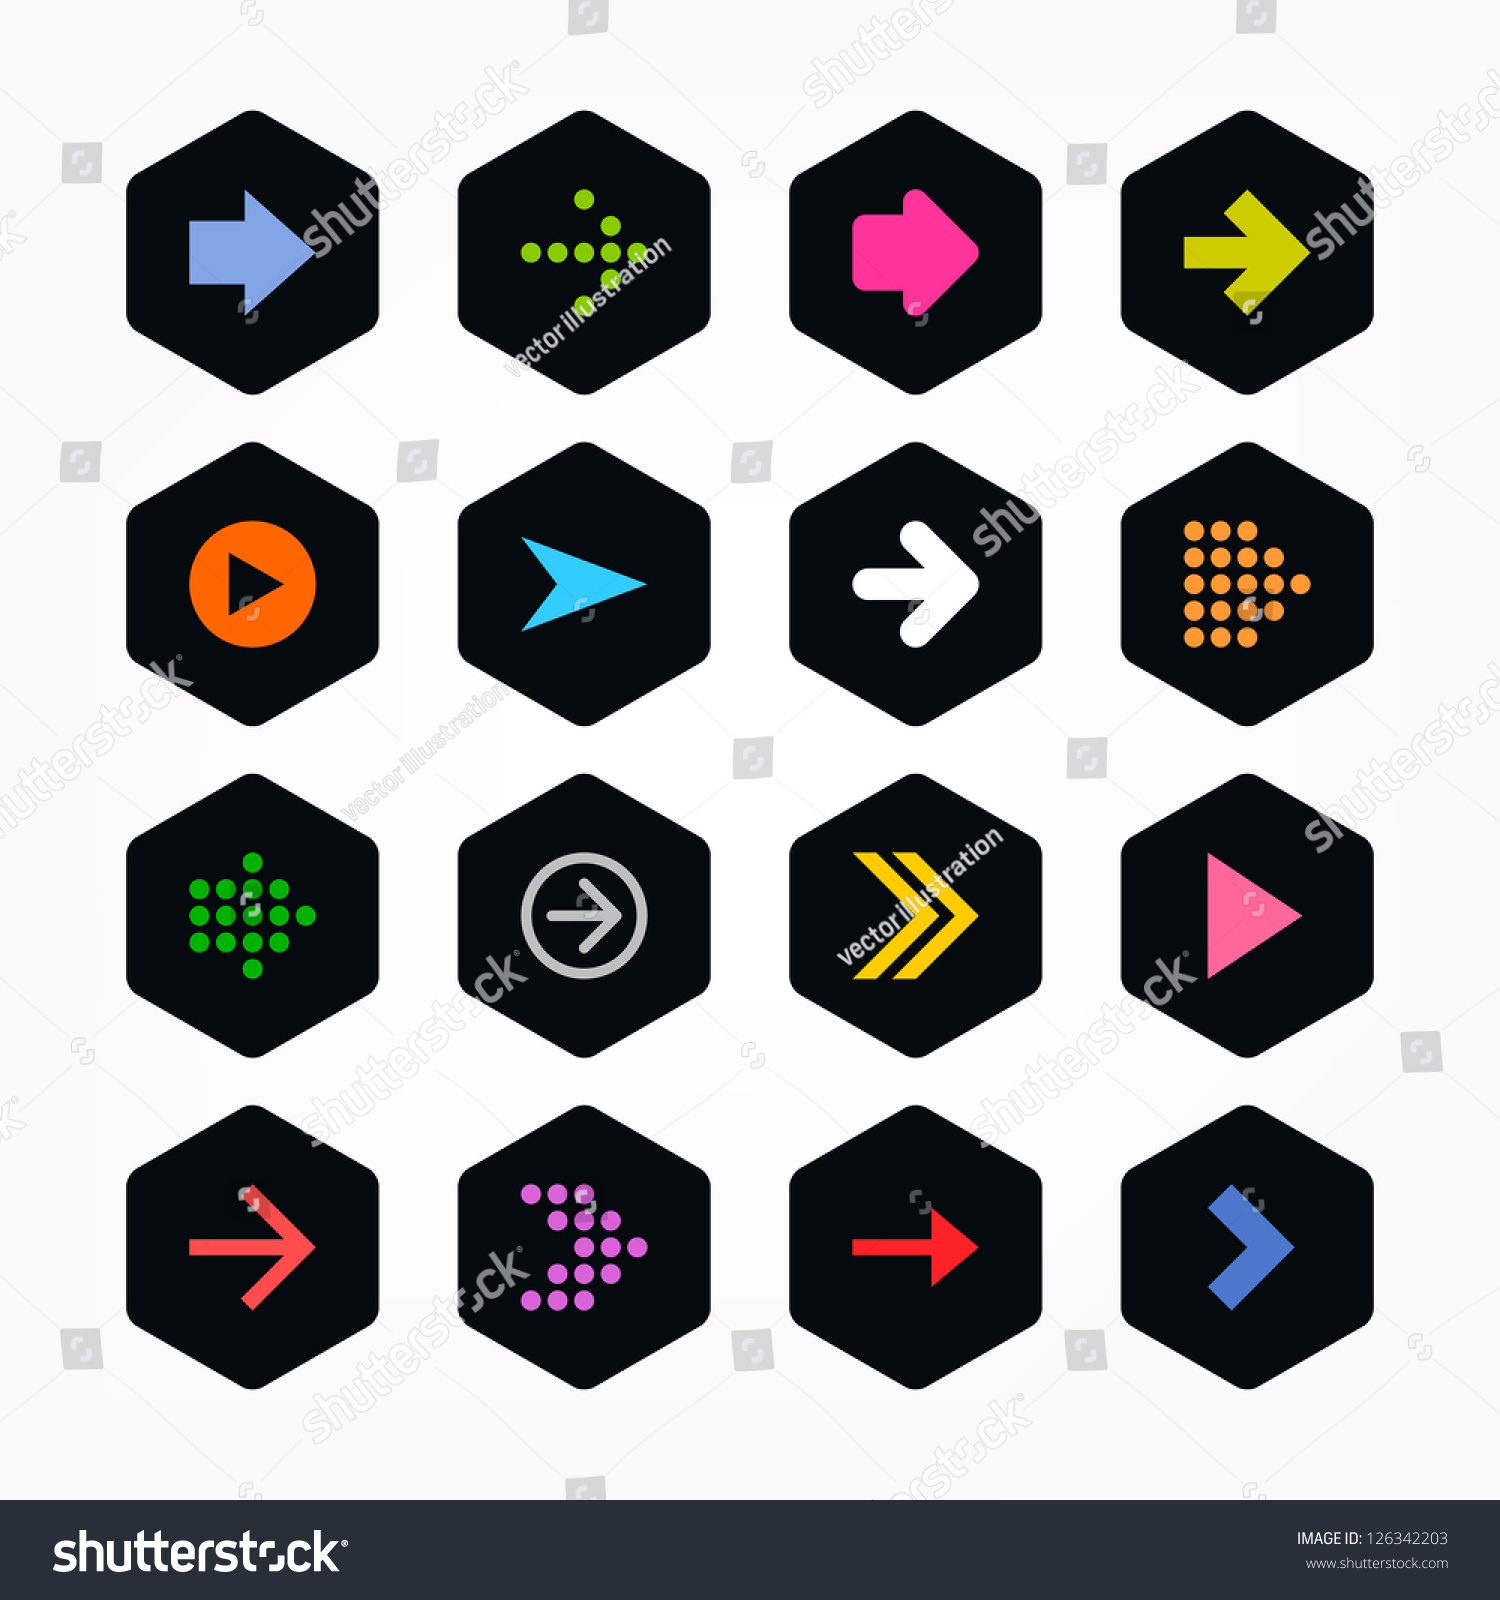 40392d3c37 Arrow icon sign set. Color on black. Simple rounded hexagon internet  button. Solid